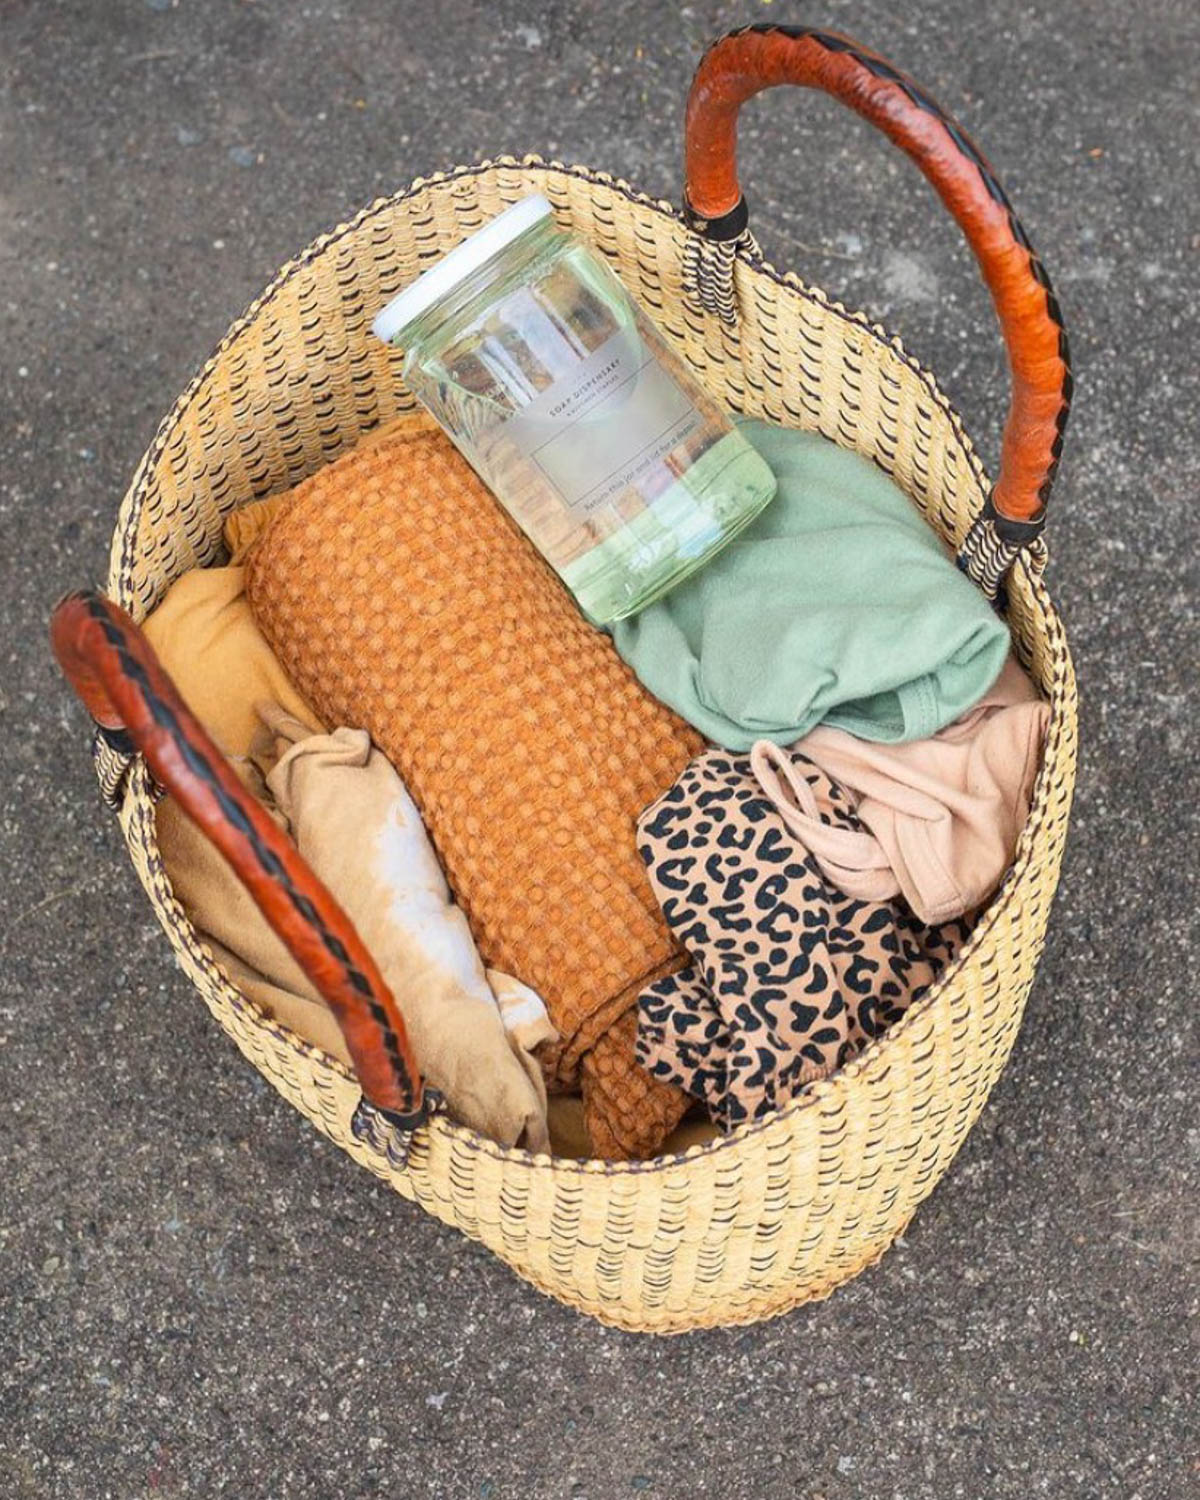 Basket filled with clothes and laundry soap